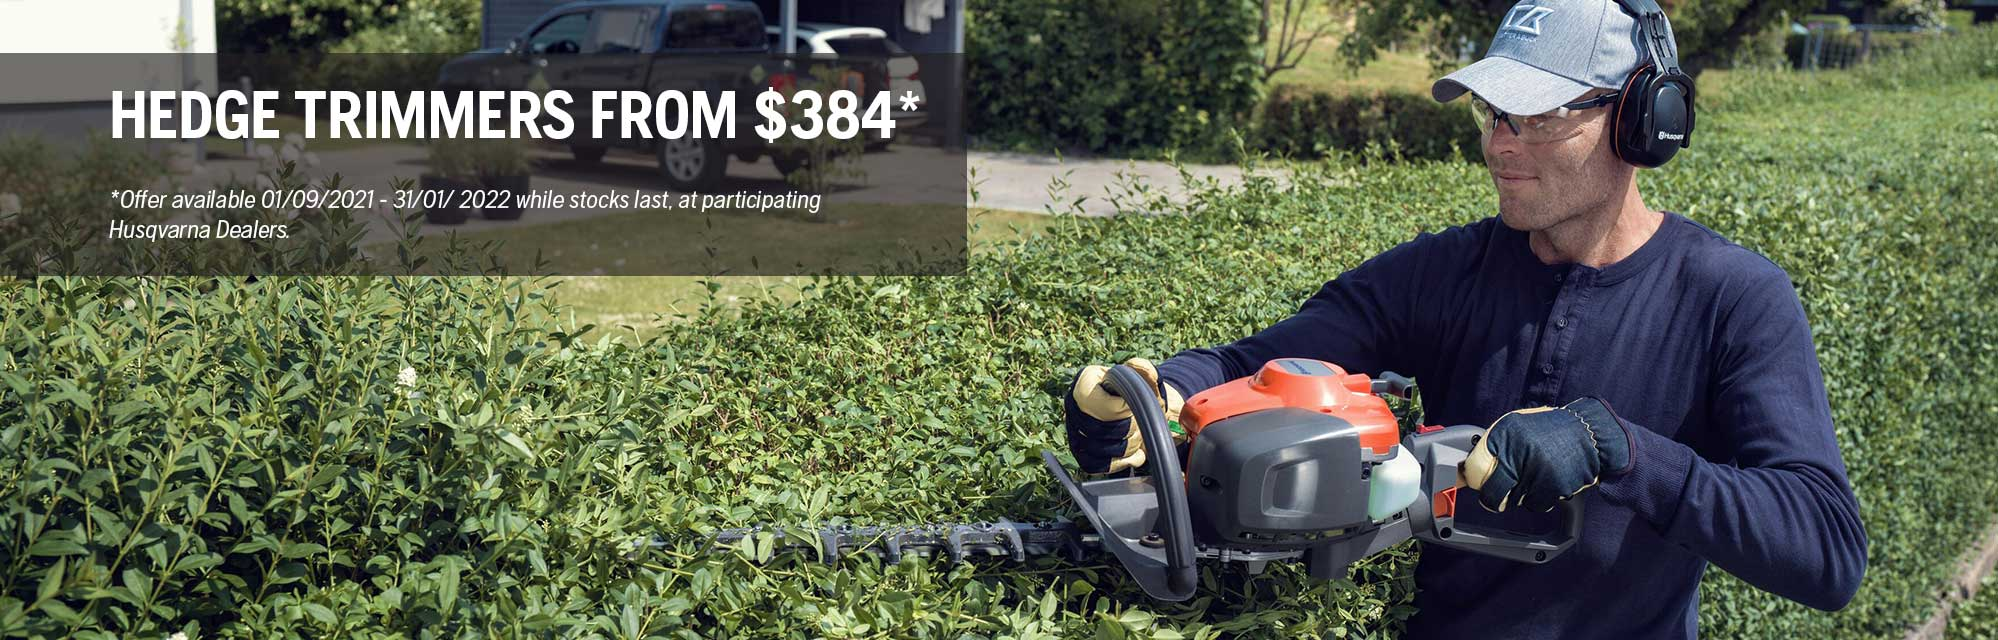 11 Hedge Trimmers - Spring